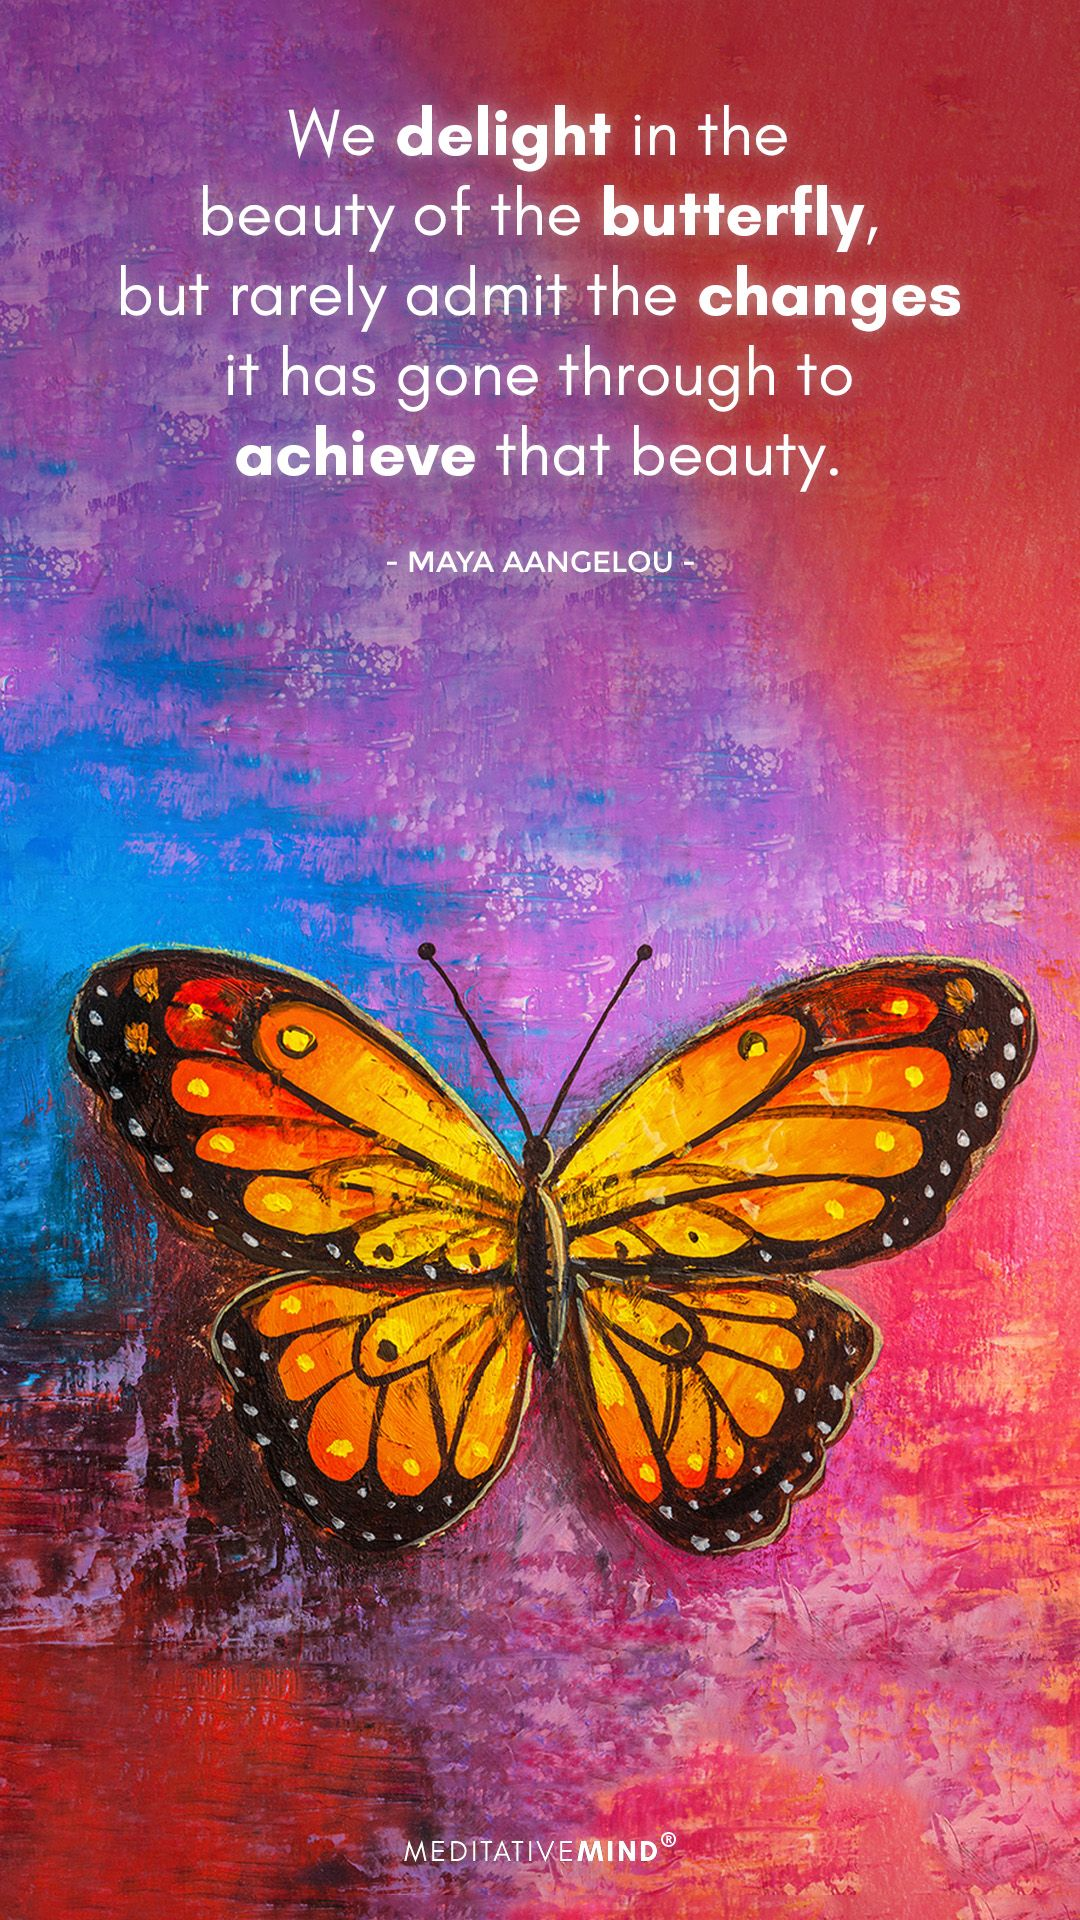 We Delight In The Beauty Of The Butterfly Motivational Quotes For Life Rumi Love Quotes Meditation Quotes